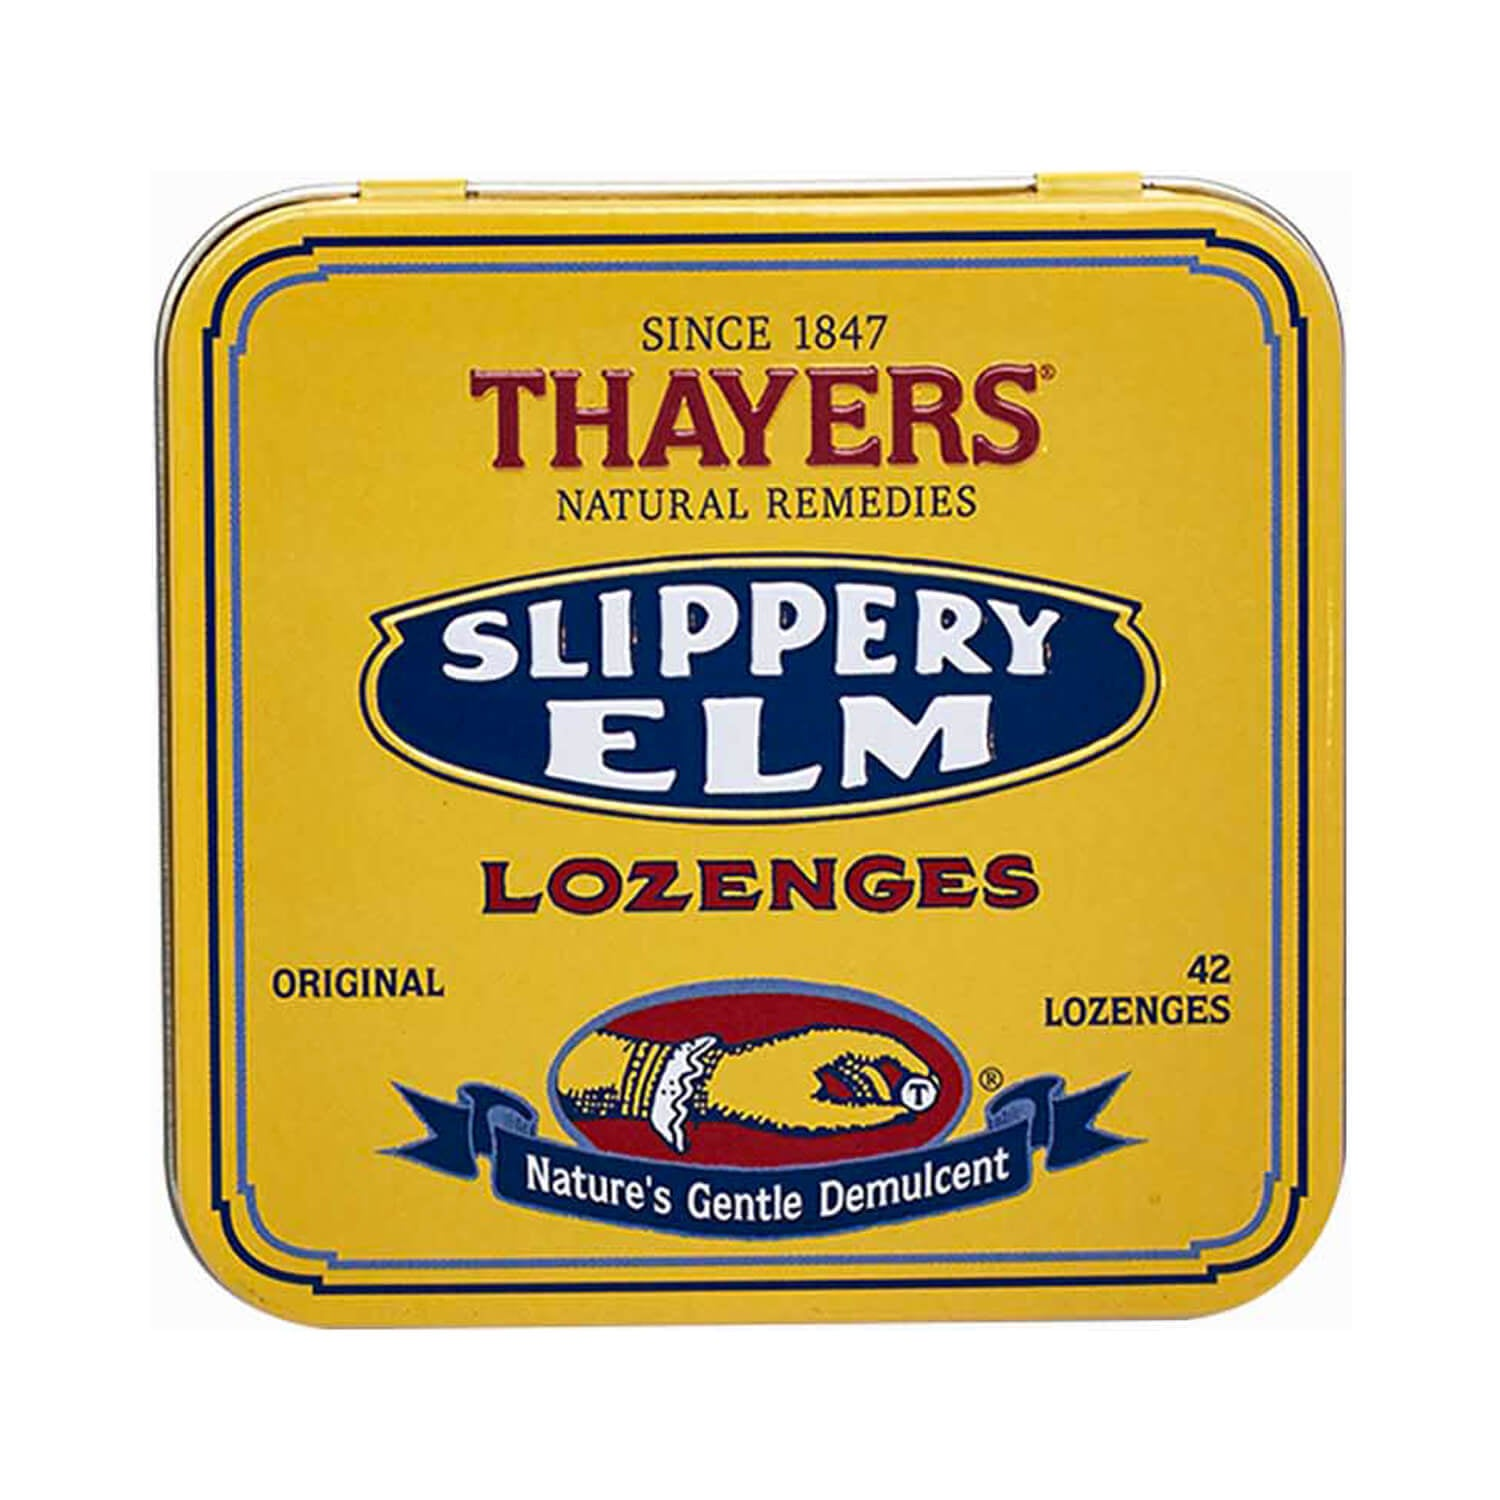 Thayers Slippery Elm Original Lozenges